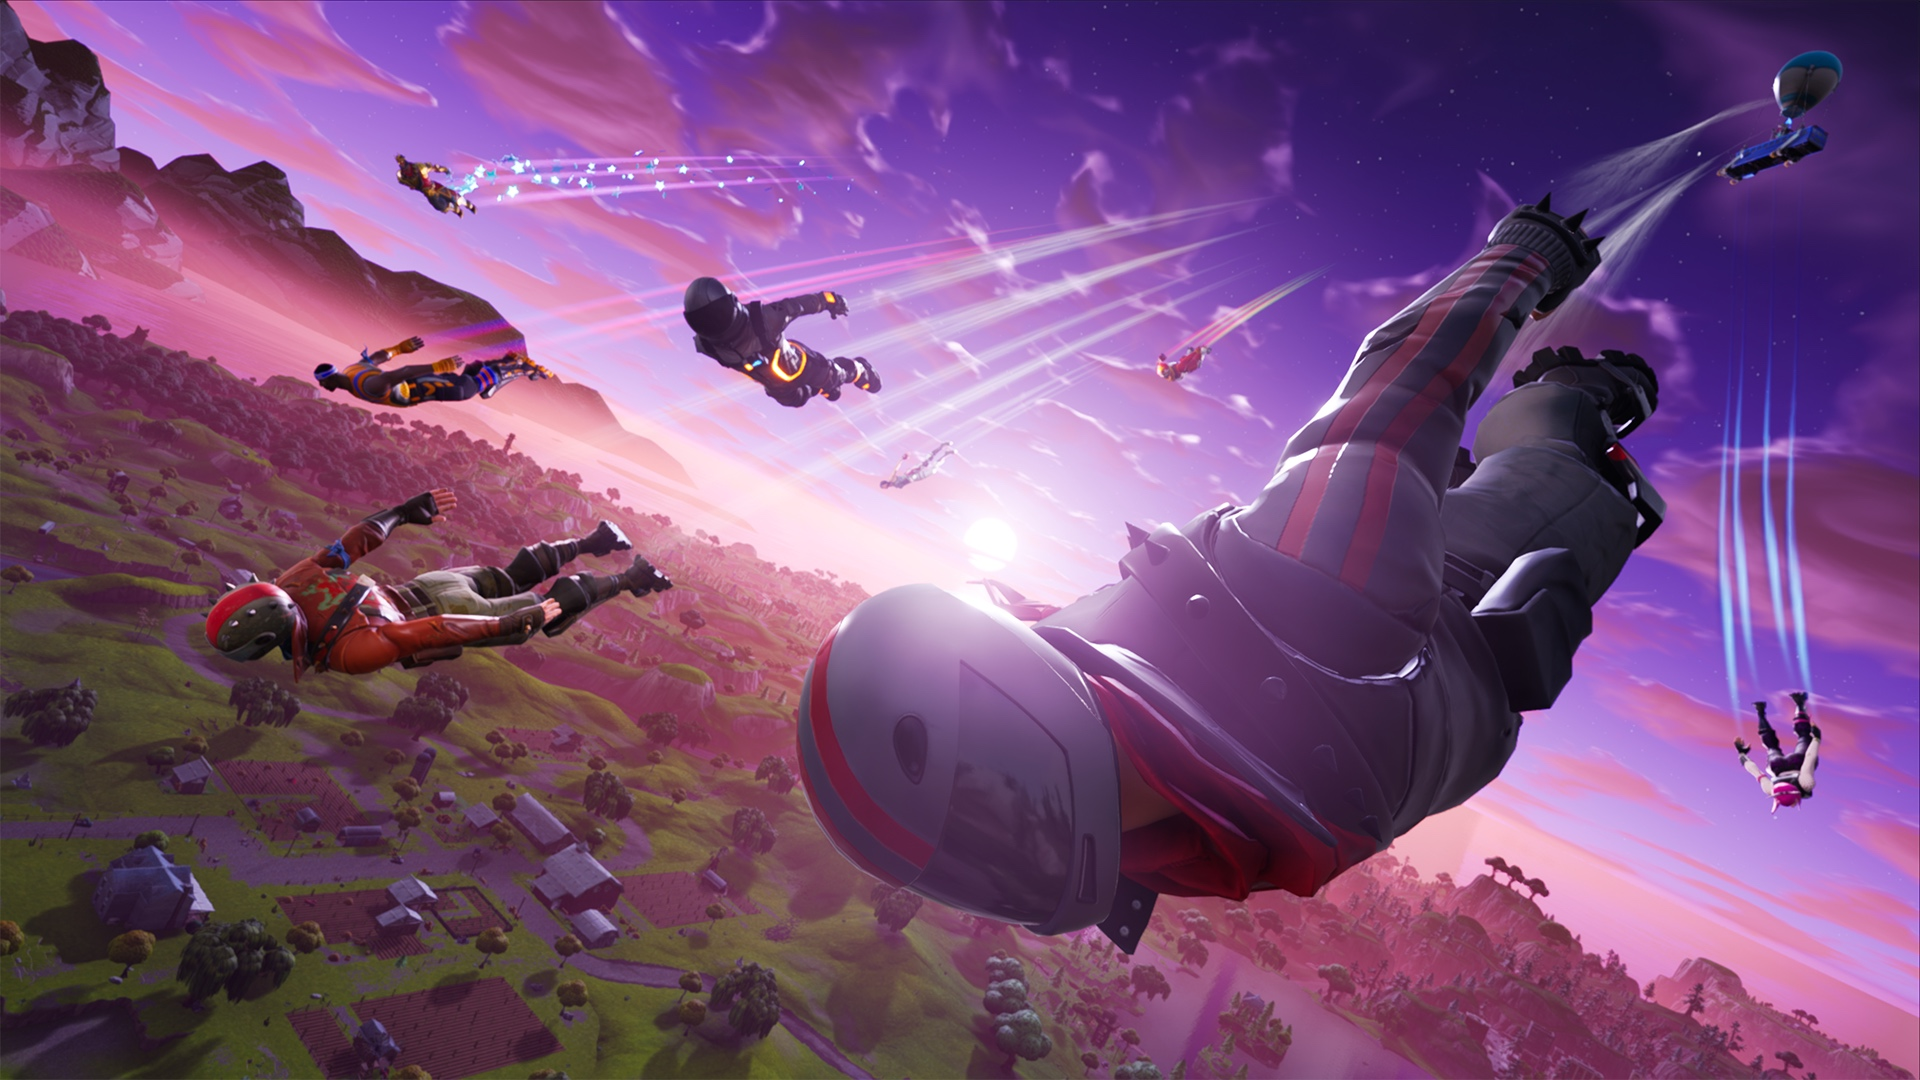 Cross-platform play coming to PS4, starting with Fortnite (update)